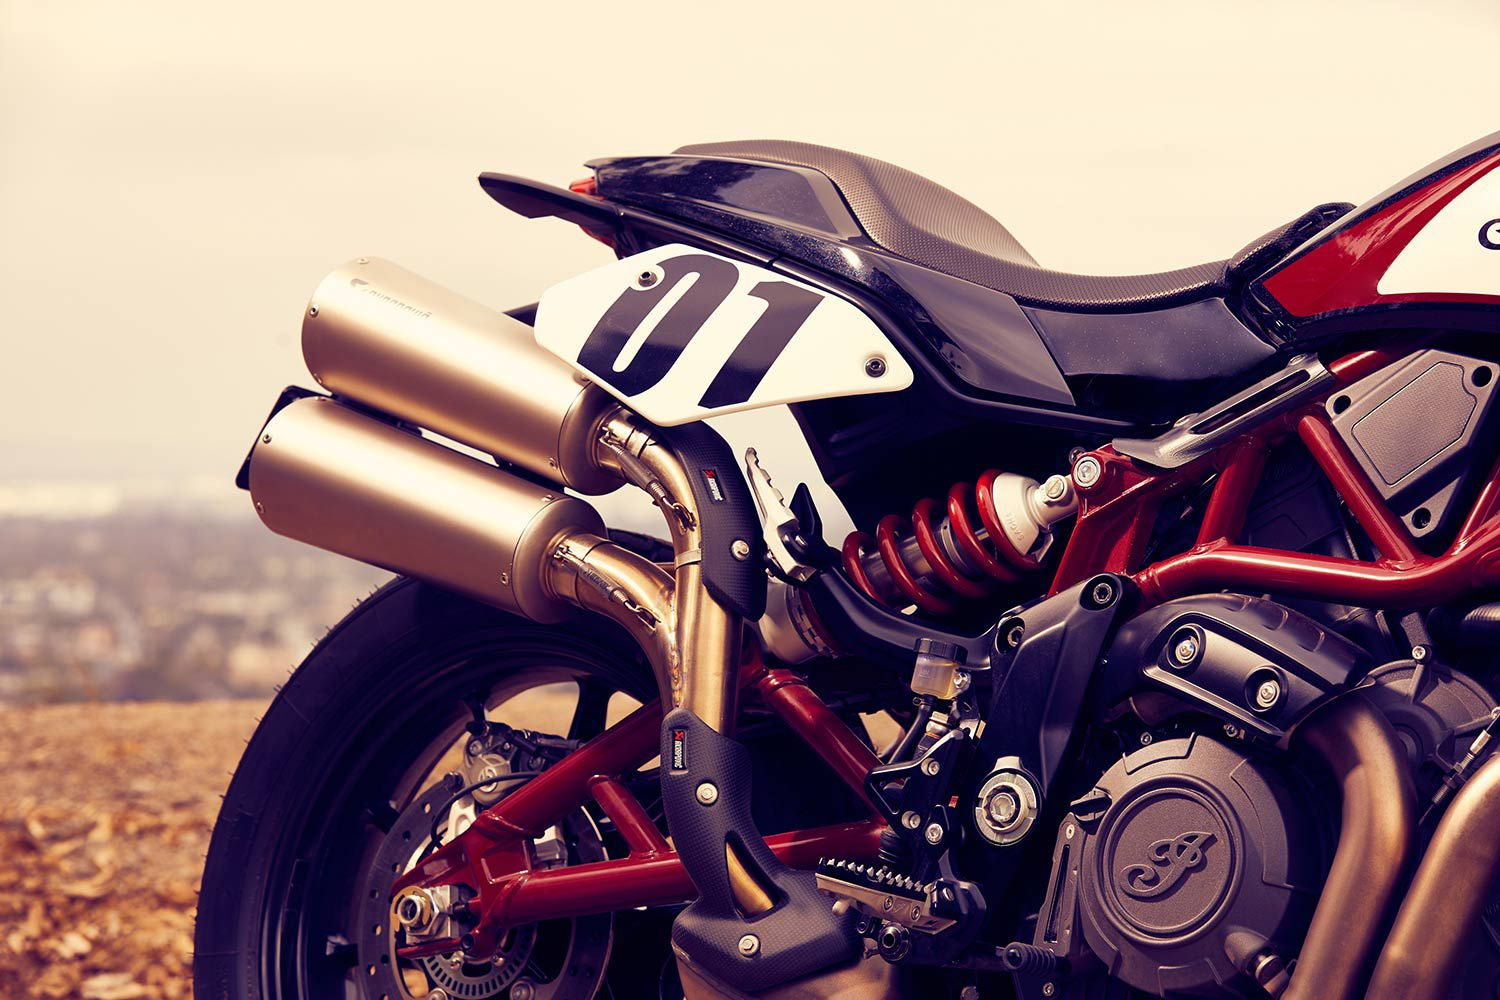 Indian Announces Accessory Kits For FTR 1200 | Motorcycle